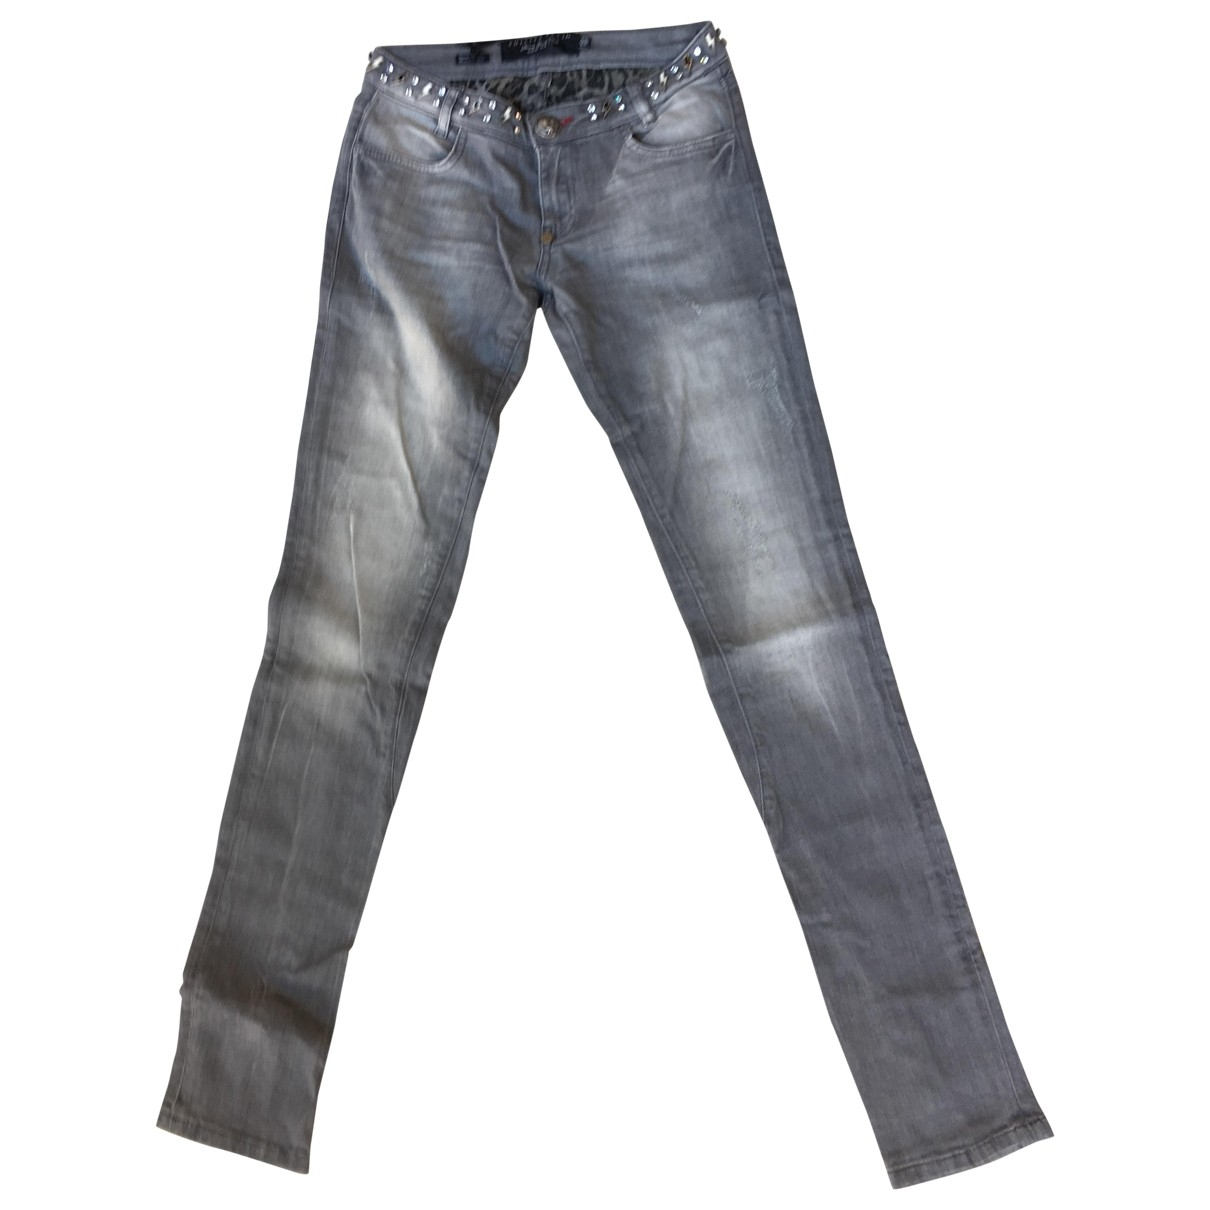 Philipp Plein \N Grey Denim - Jeans Jeans for Women 25 US